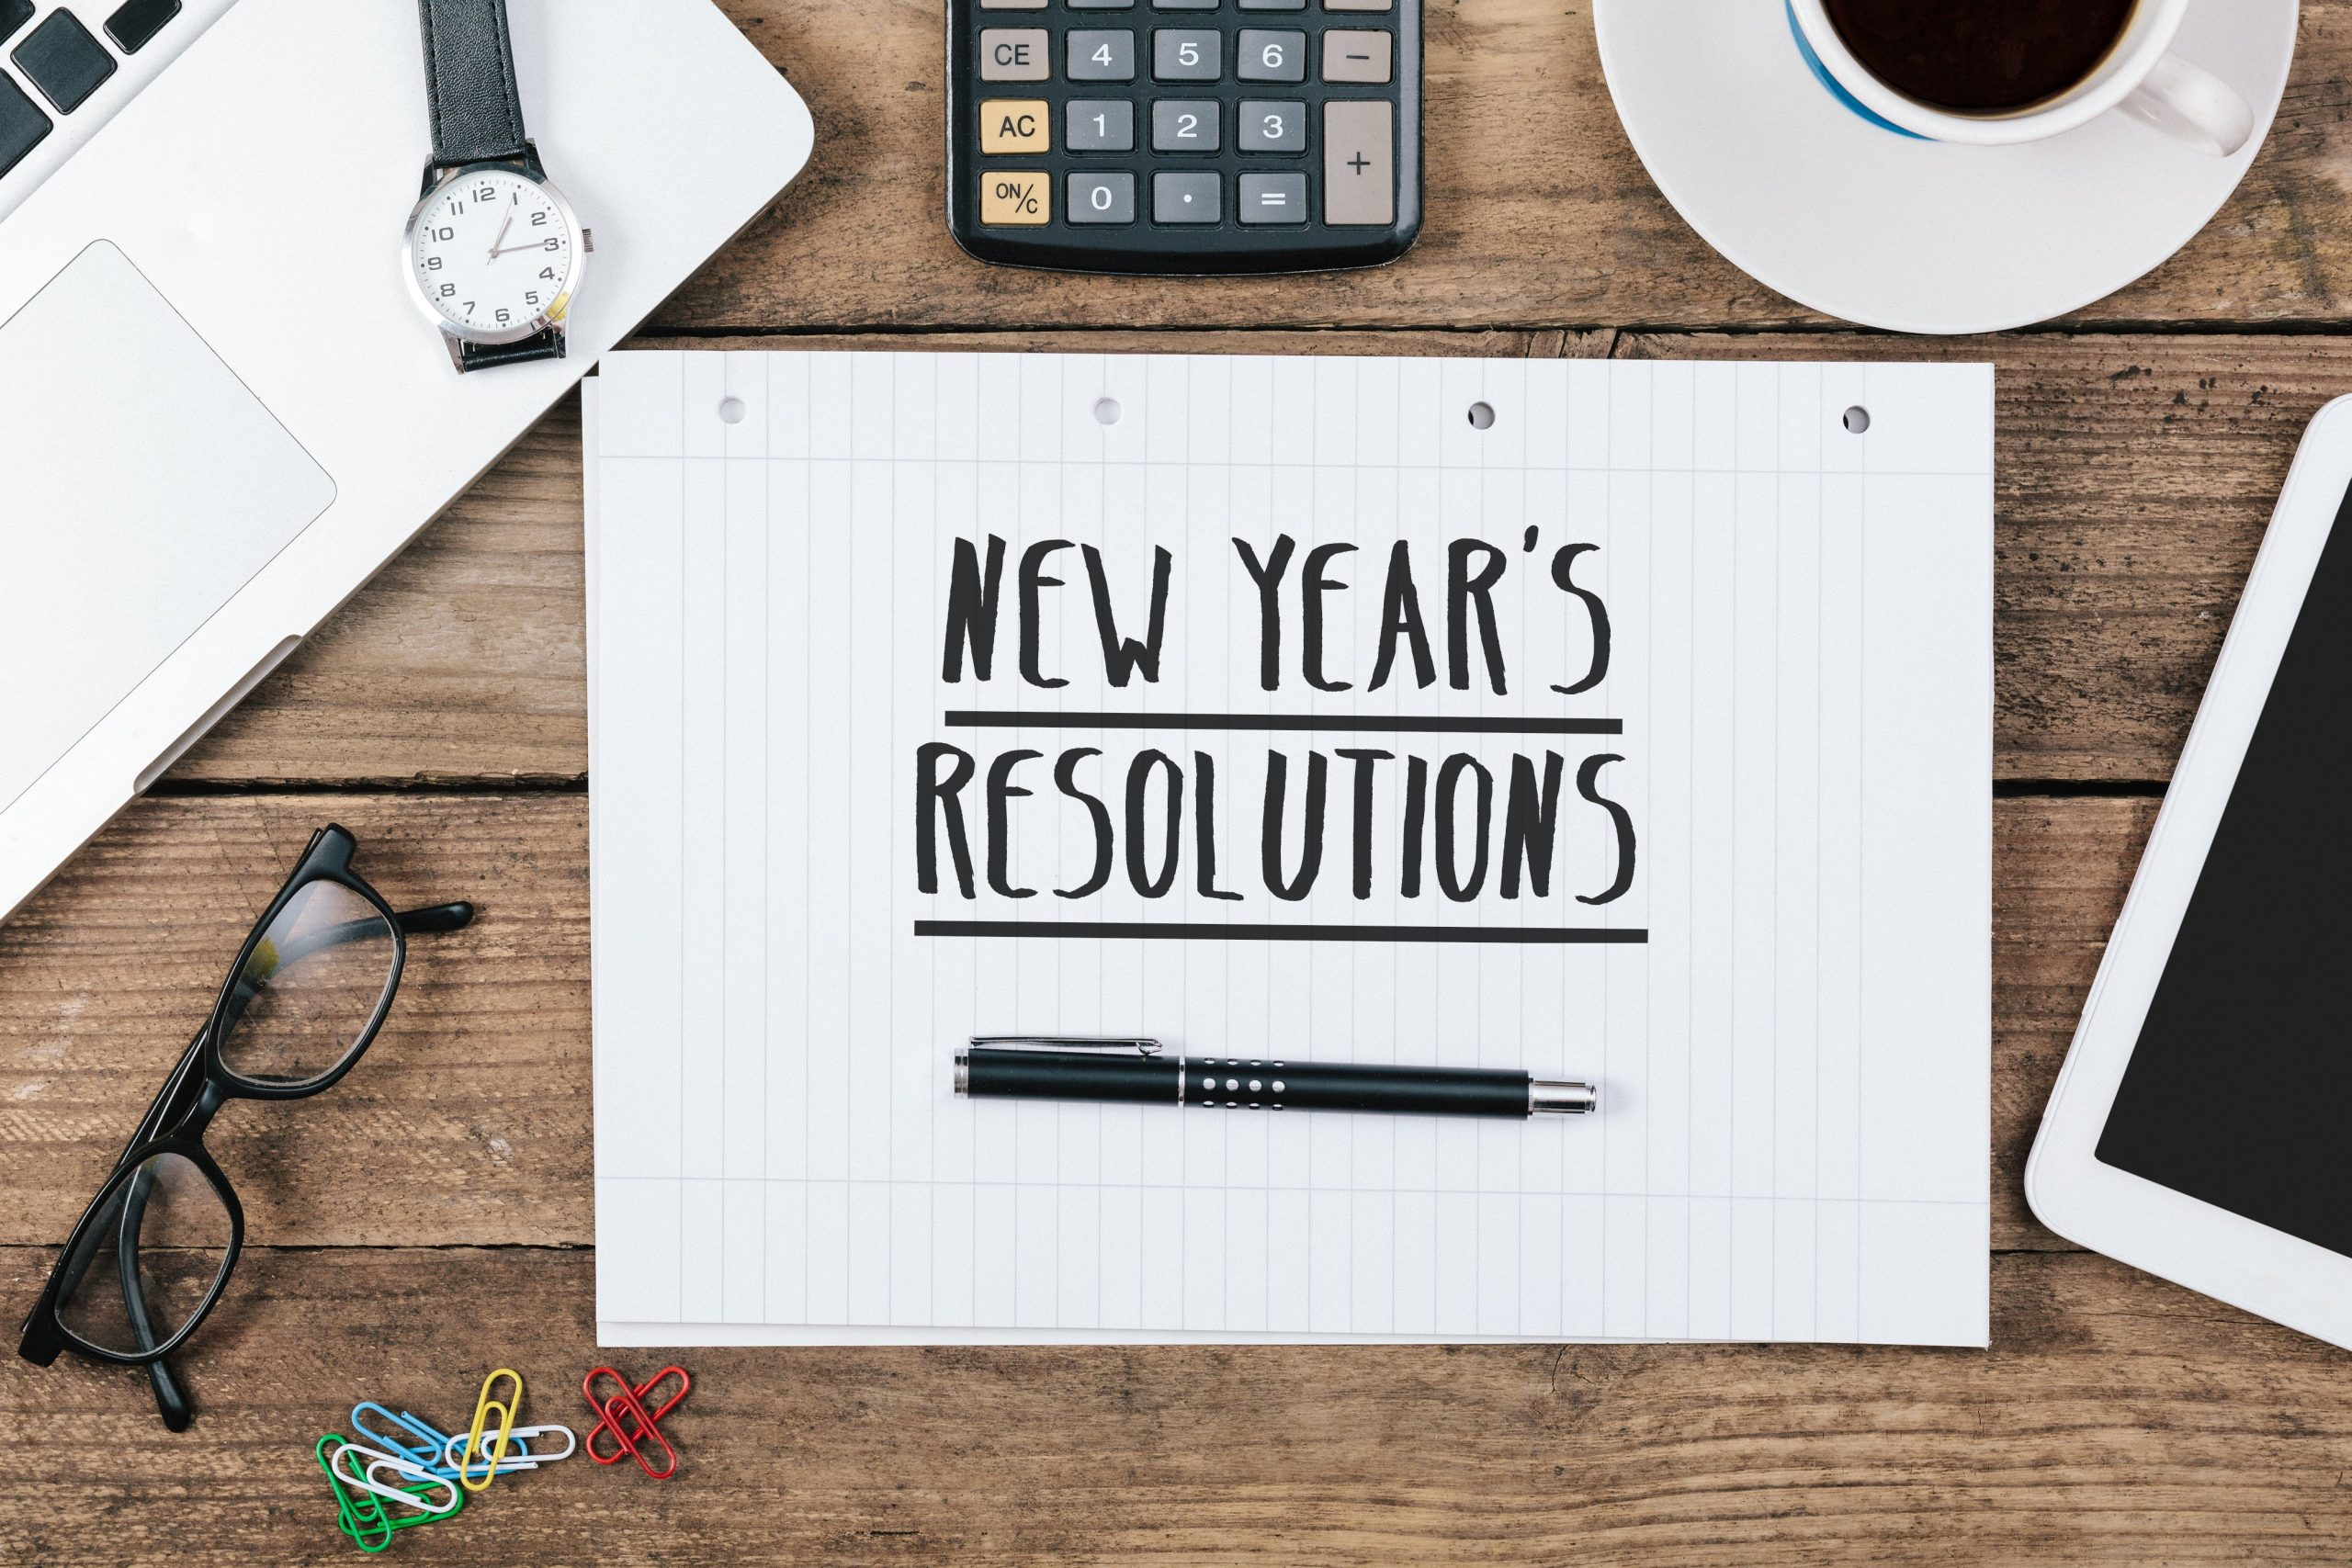 text new years's resolutions on note, Office desk with computer